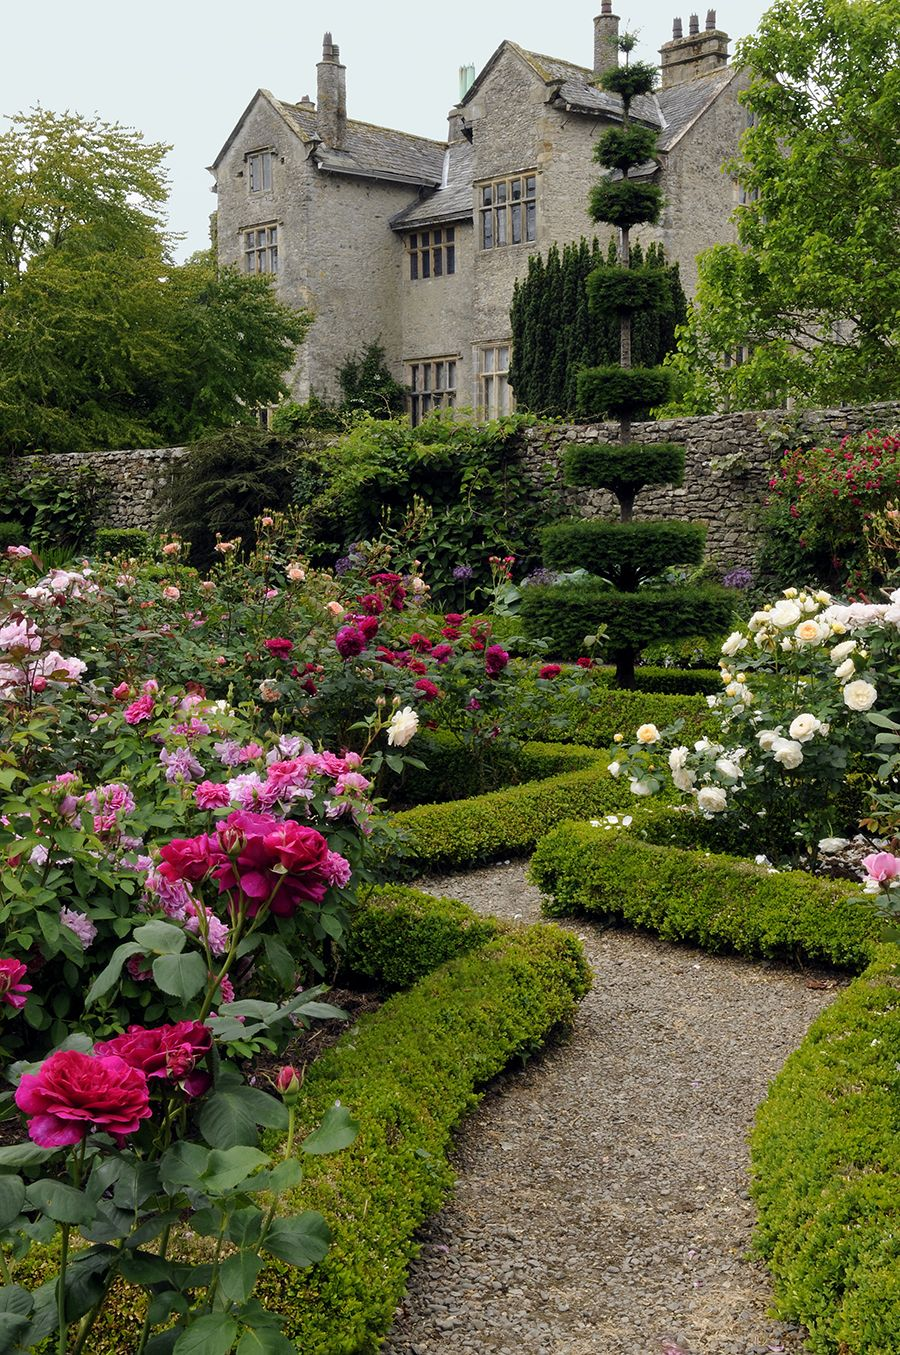 The Quintessential English Country Home Can You Imagine Cutting Roses From This Garden Every Day